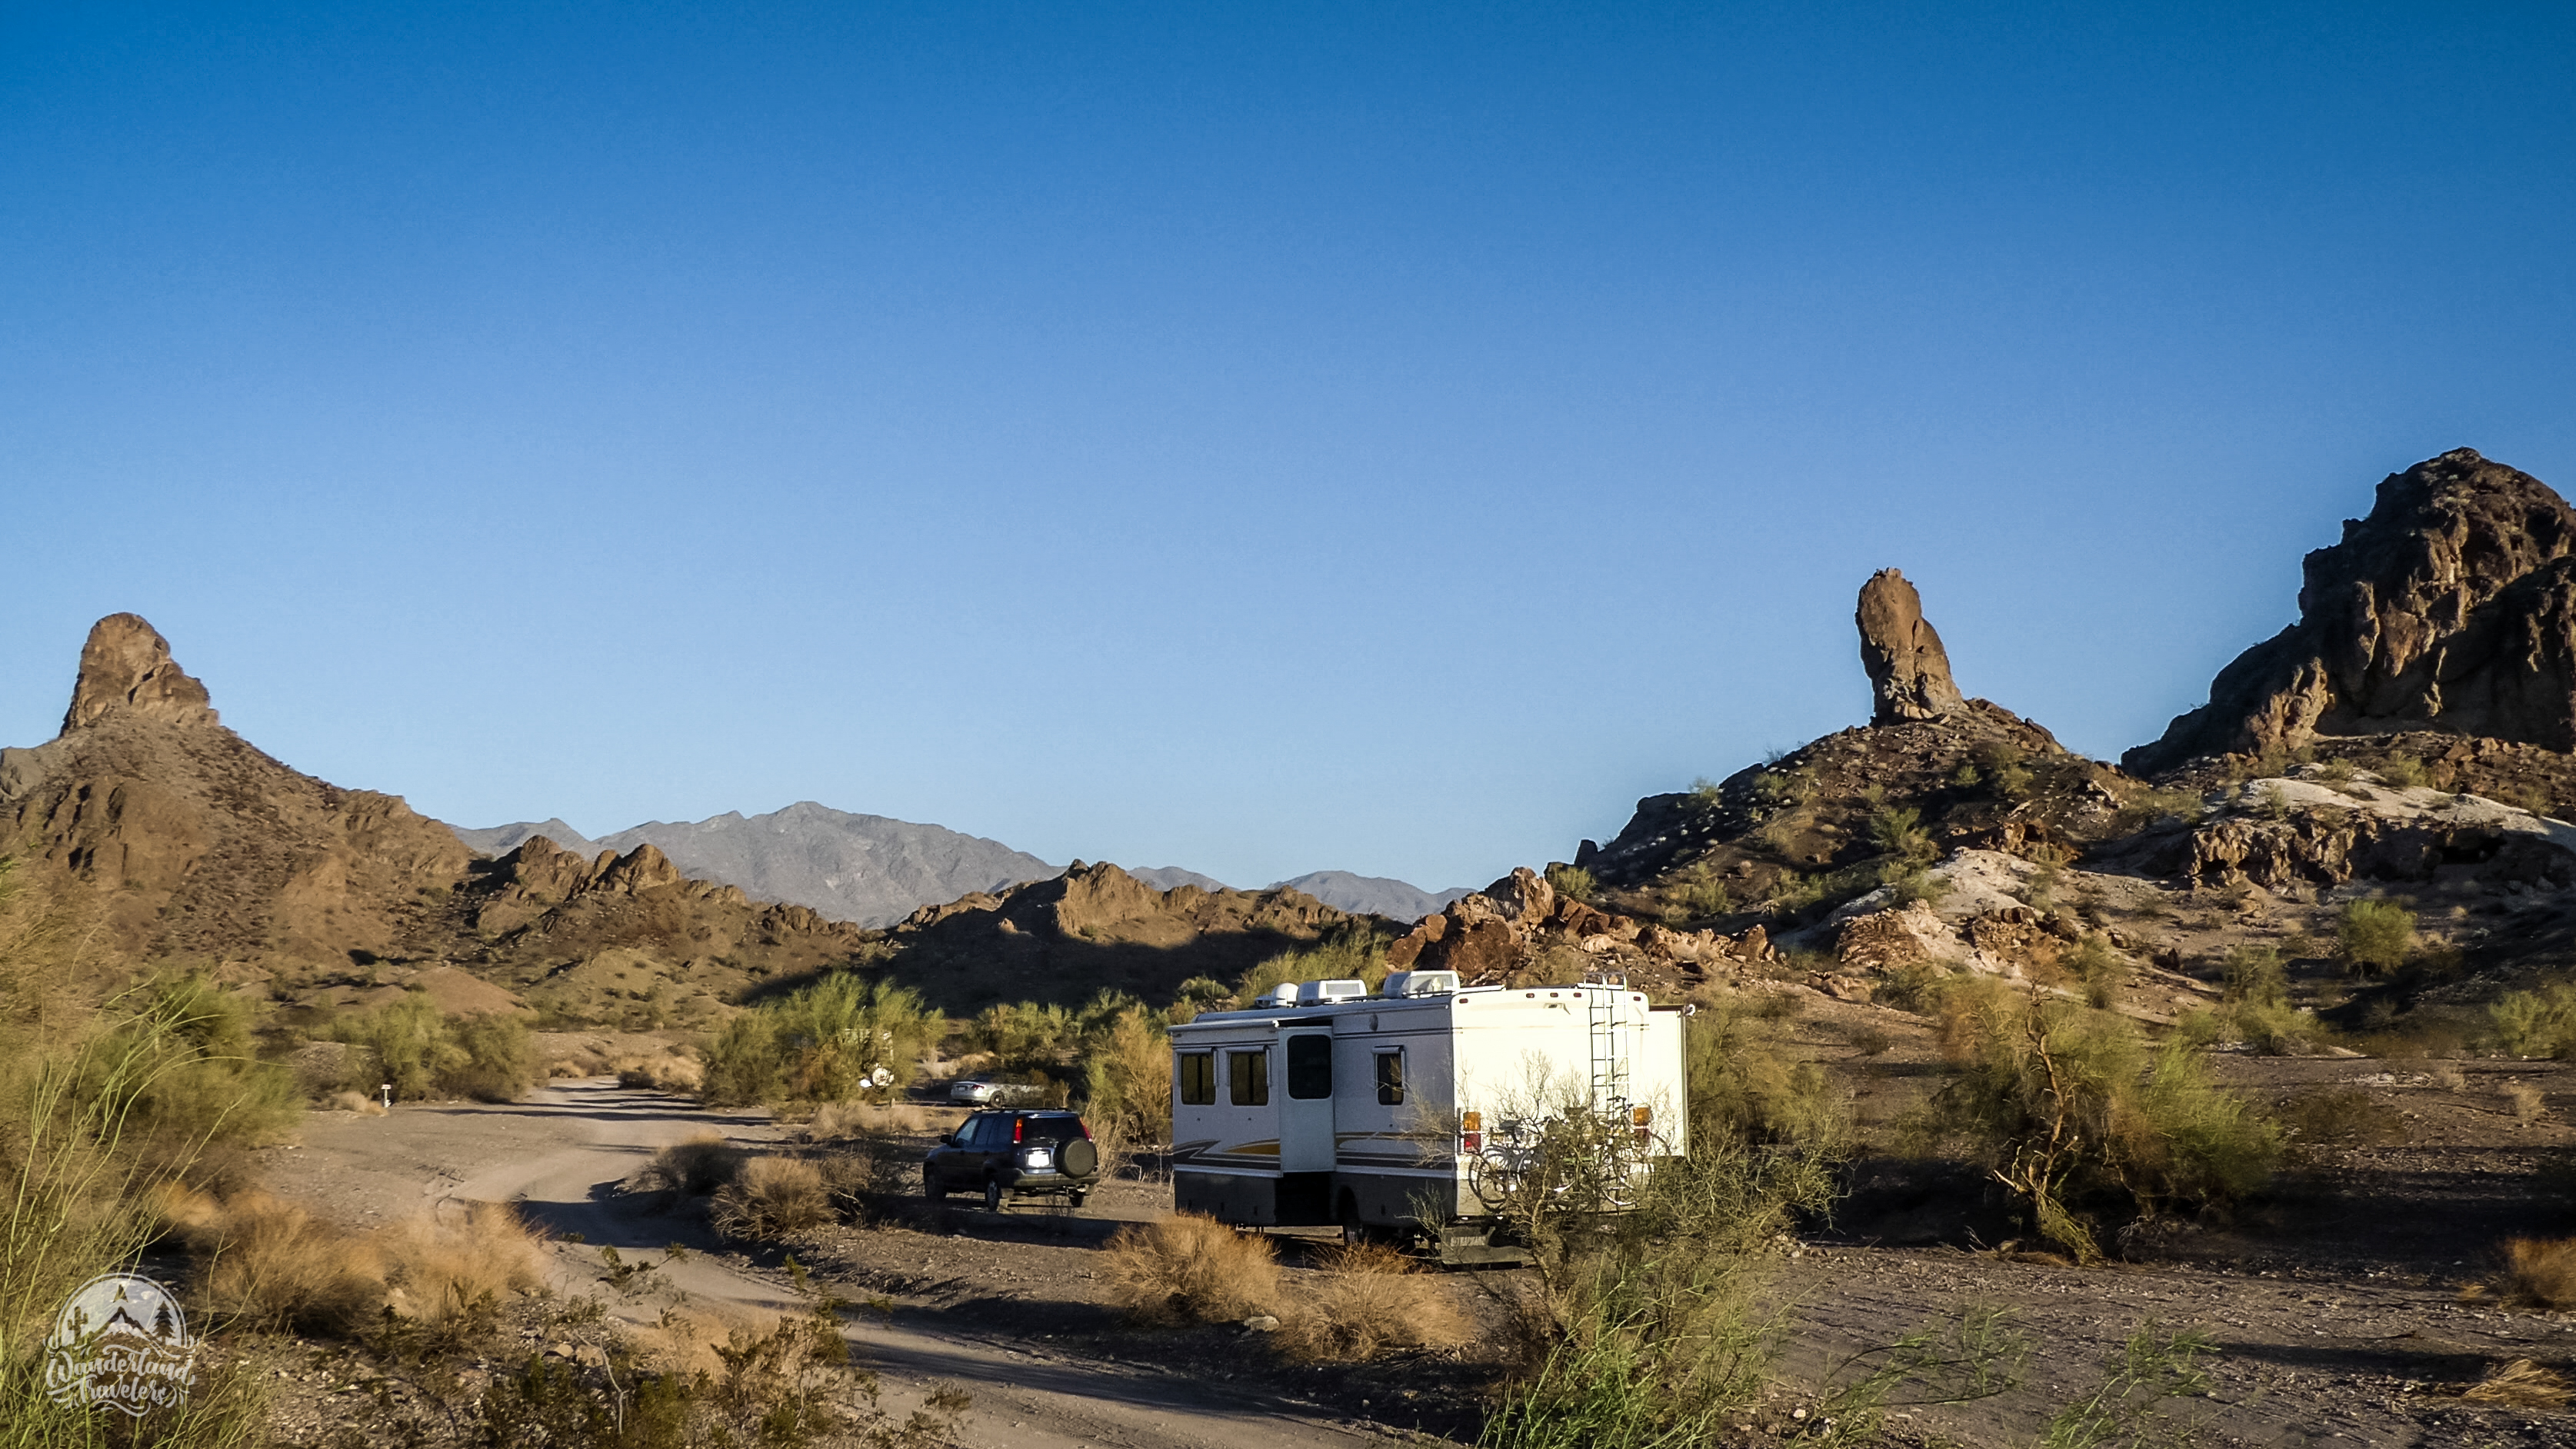 Boondocking at Craggy Wash: Lake Havasu